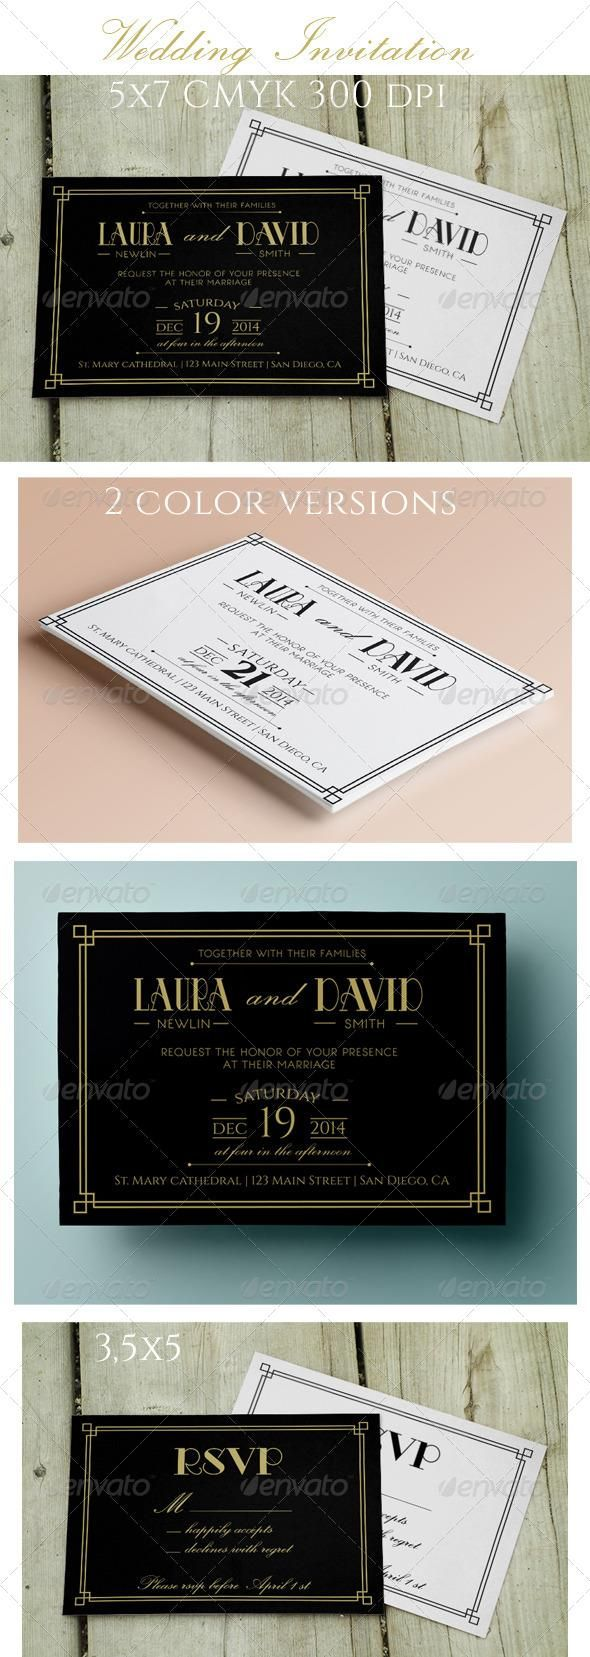 wedding invitation design psd%0A Wedding Invitation and RSVP  template  cards  print  invites